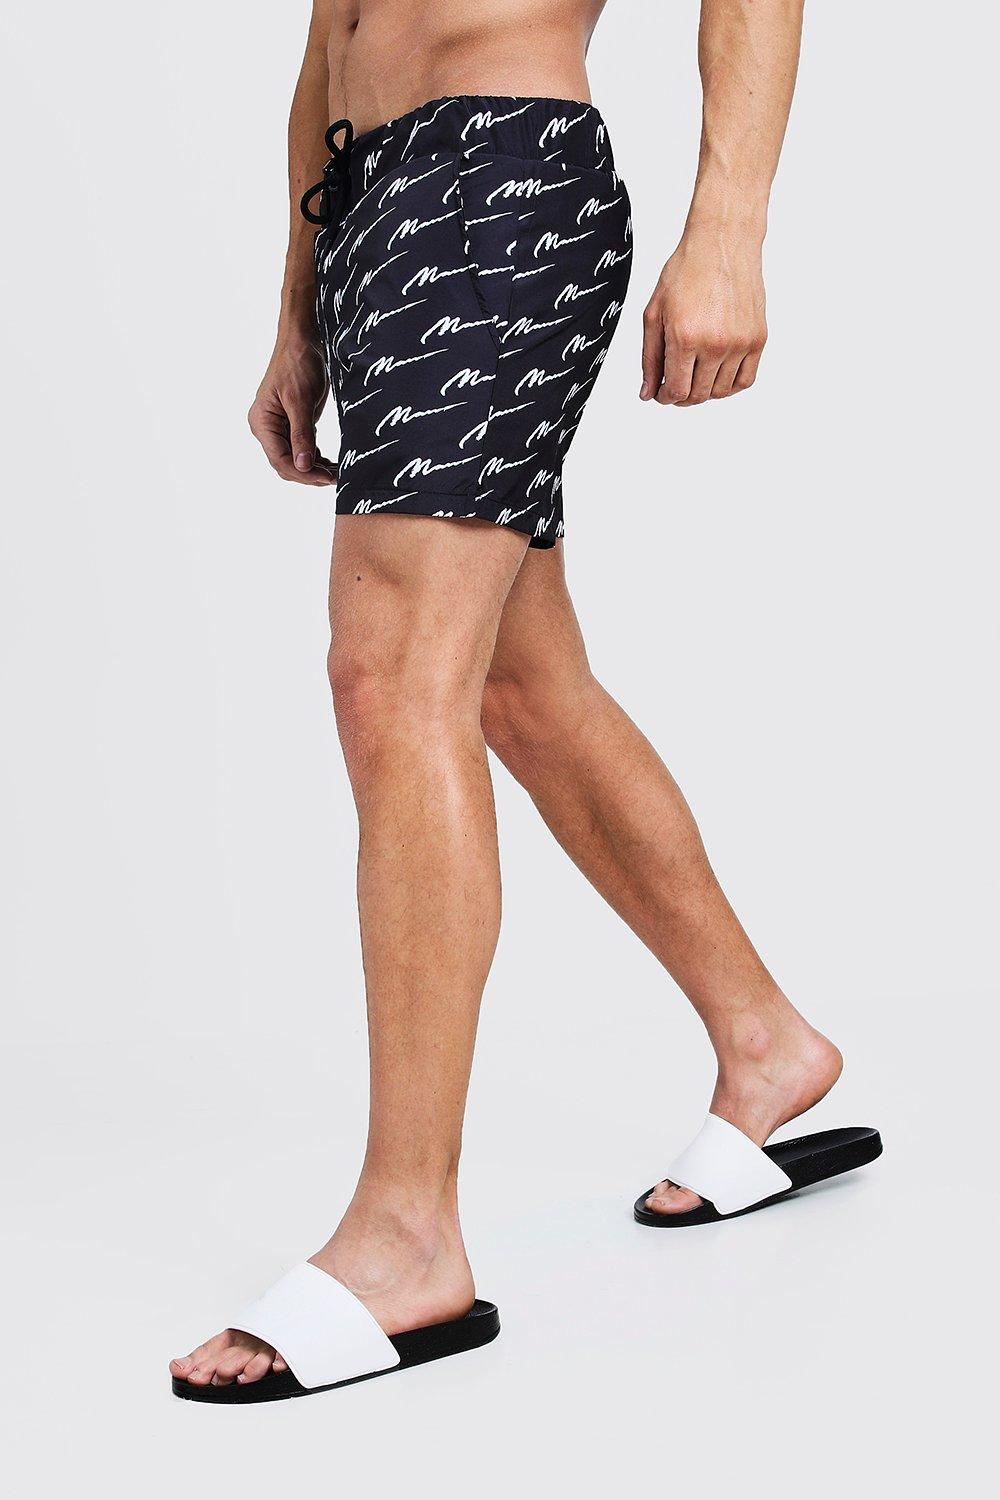 All Over MAN Print Mid Length Swim Short